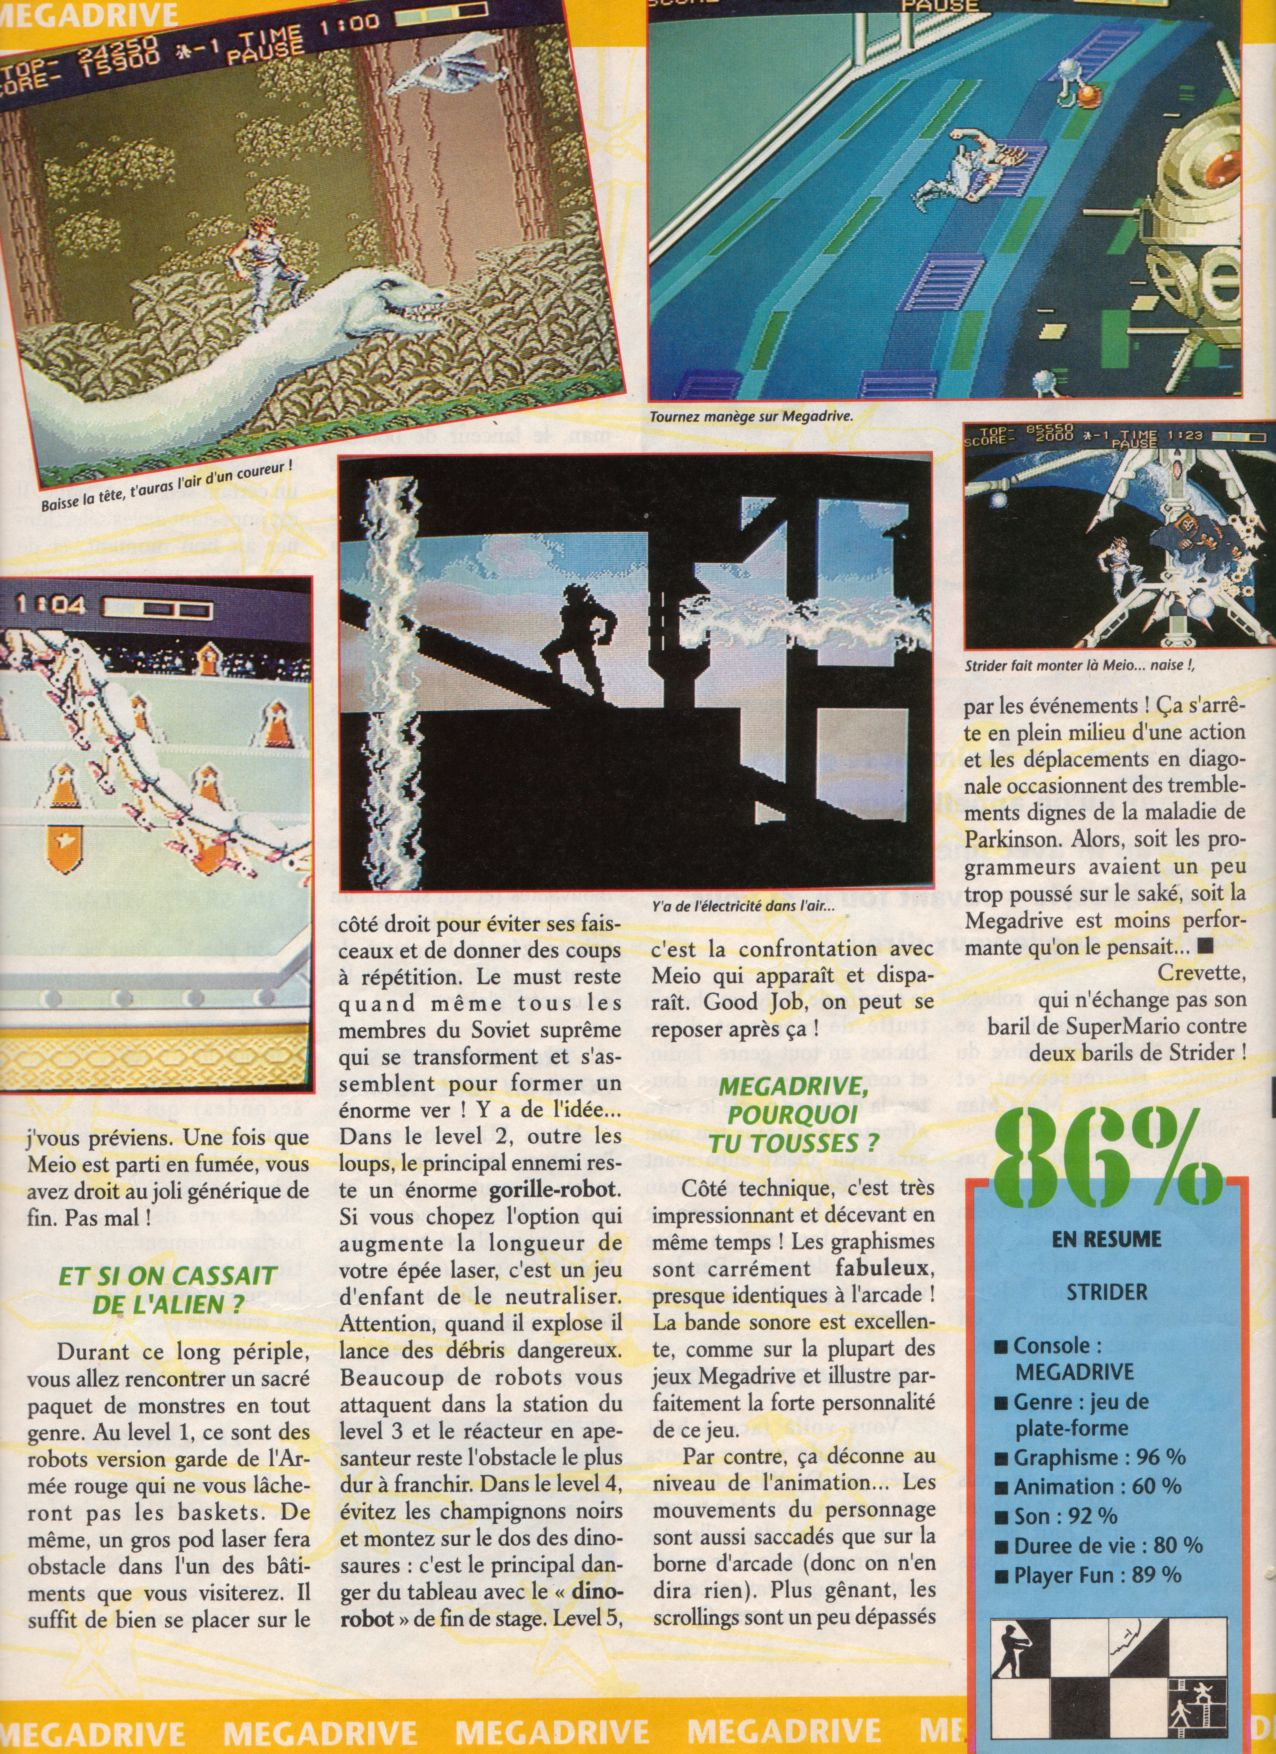 [Jeux] STRIDER (Mega Drive) 1990. Player%20One%20007%20-%20Page%20027%20(1991-03)